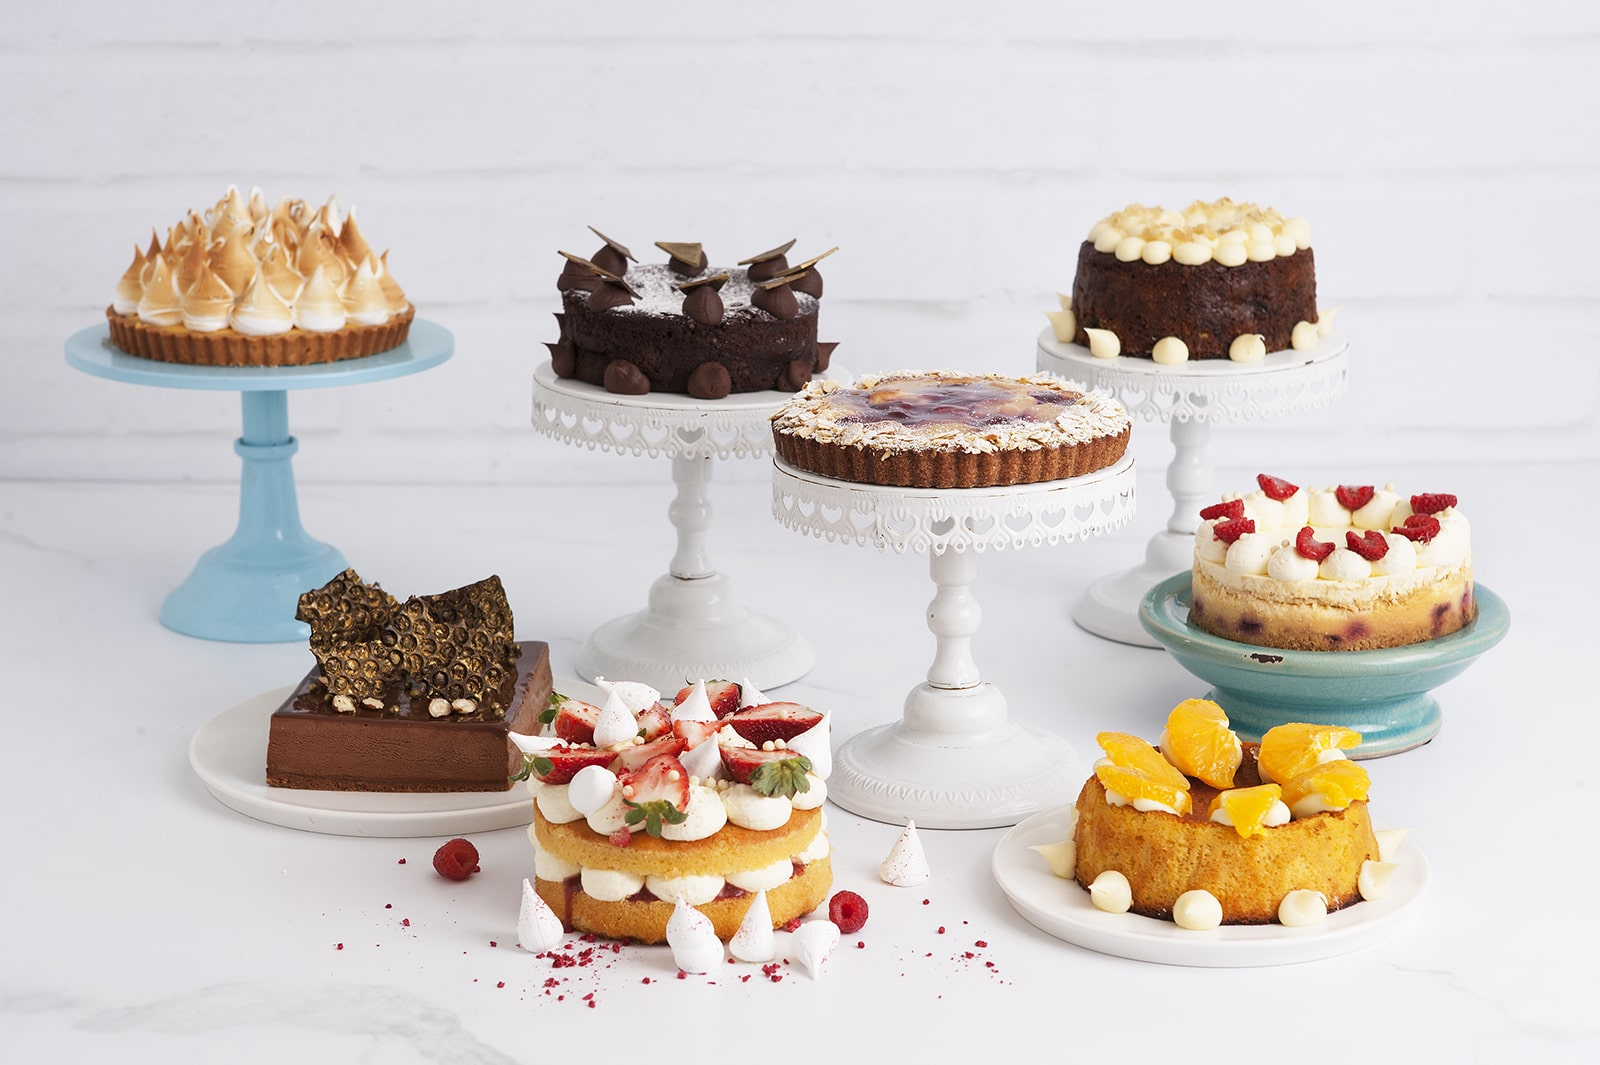 We've got the sweets sorted for your next dinner party with our selection of eight delectable whole cakes and tarts.